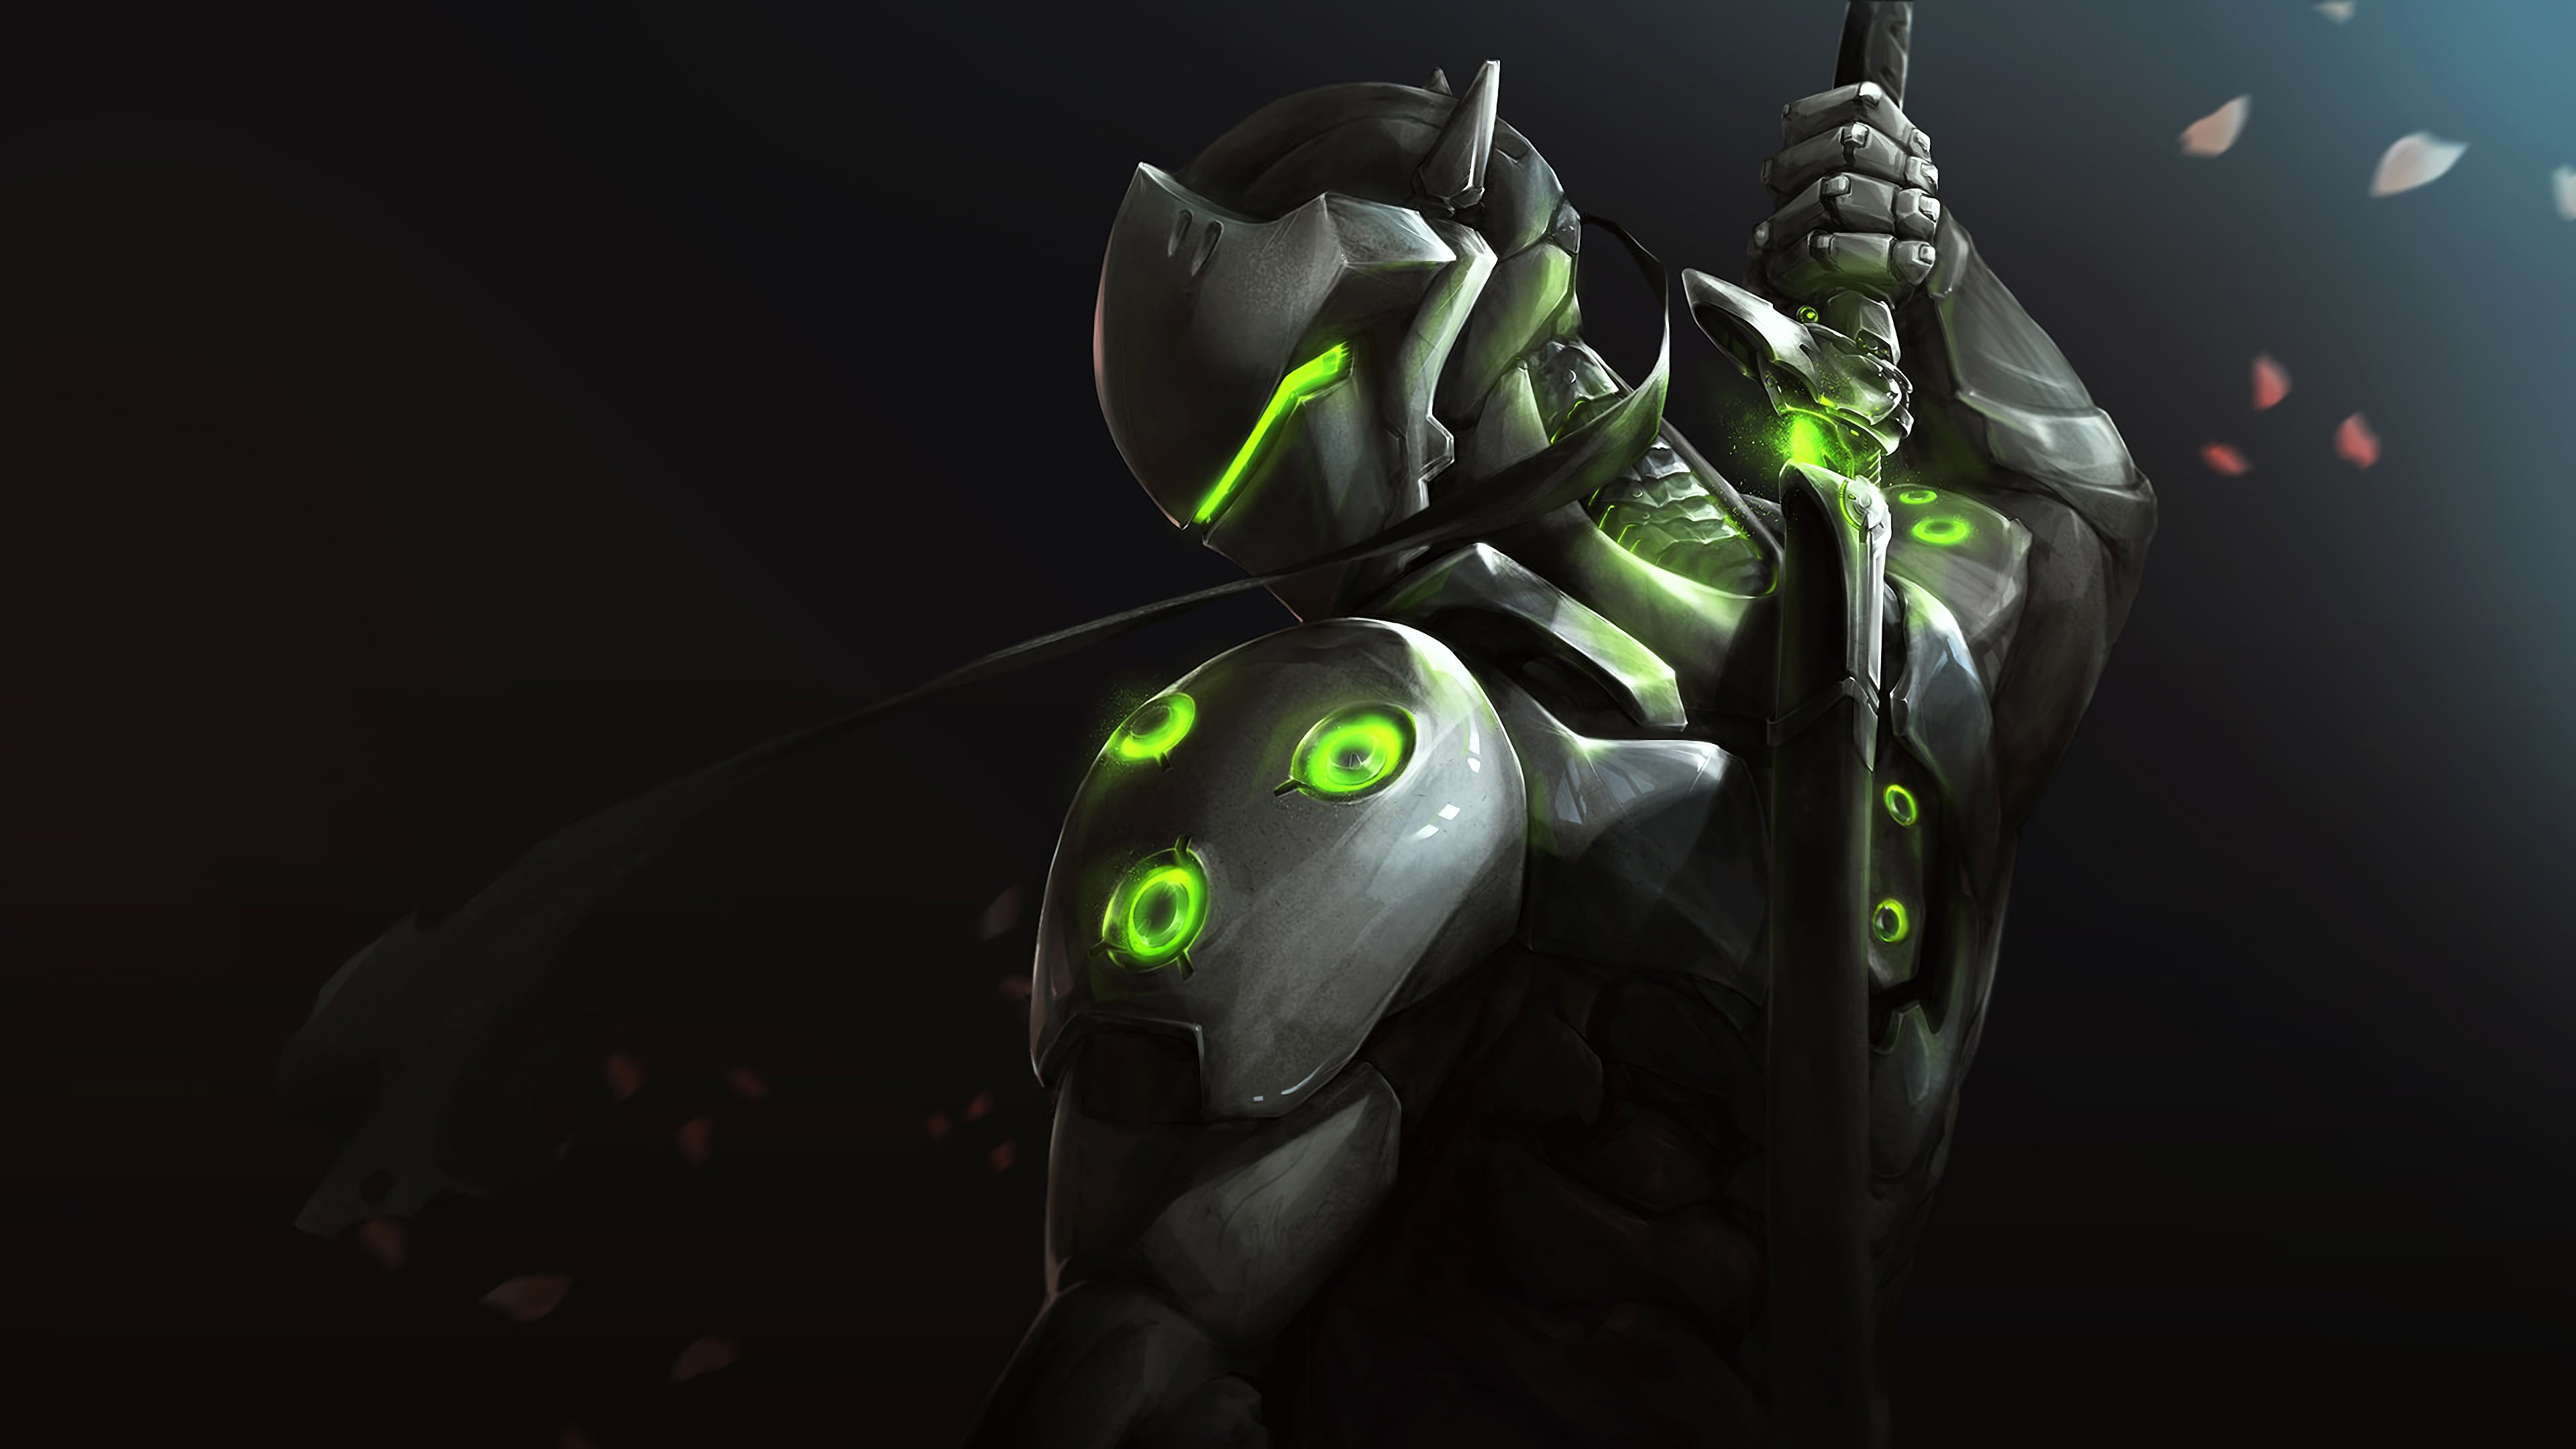 genji Overwatch Hd Wallpaper Genji 4k, Download Wallpapers